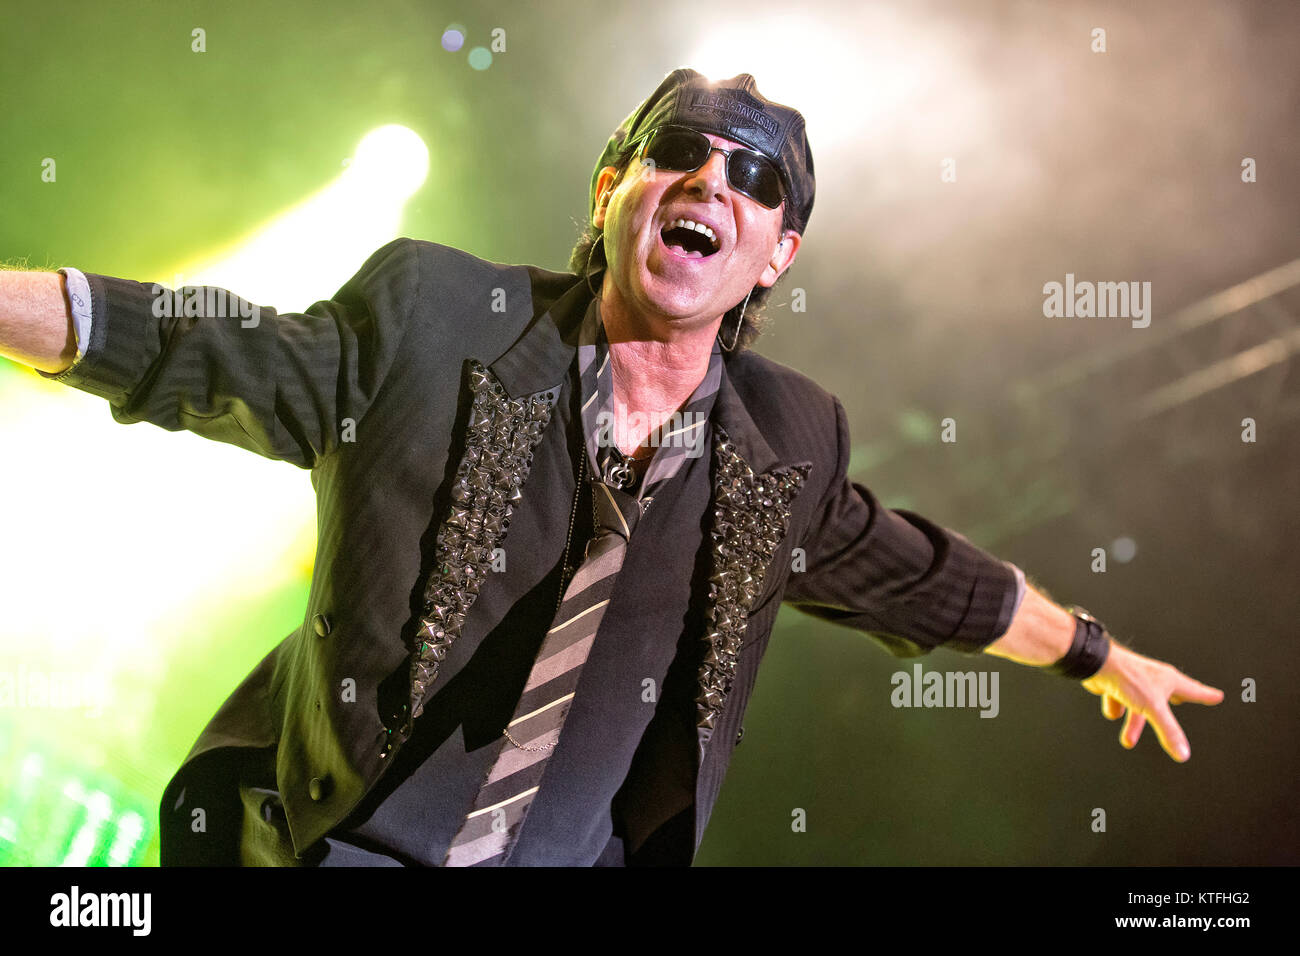 The German rock band Scorpions performs a live concert at